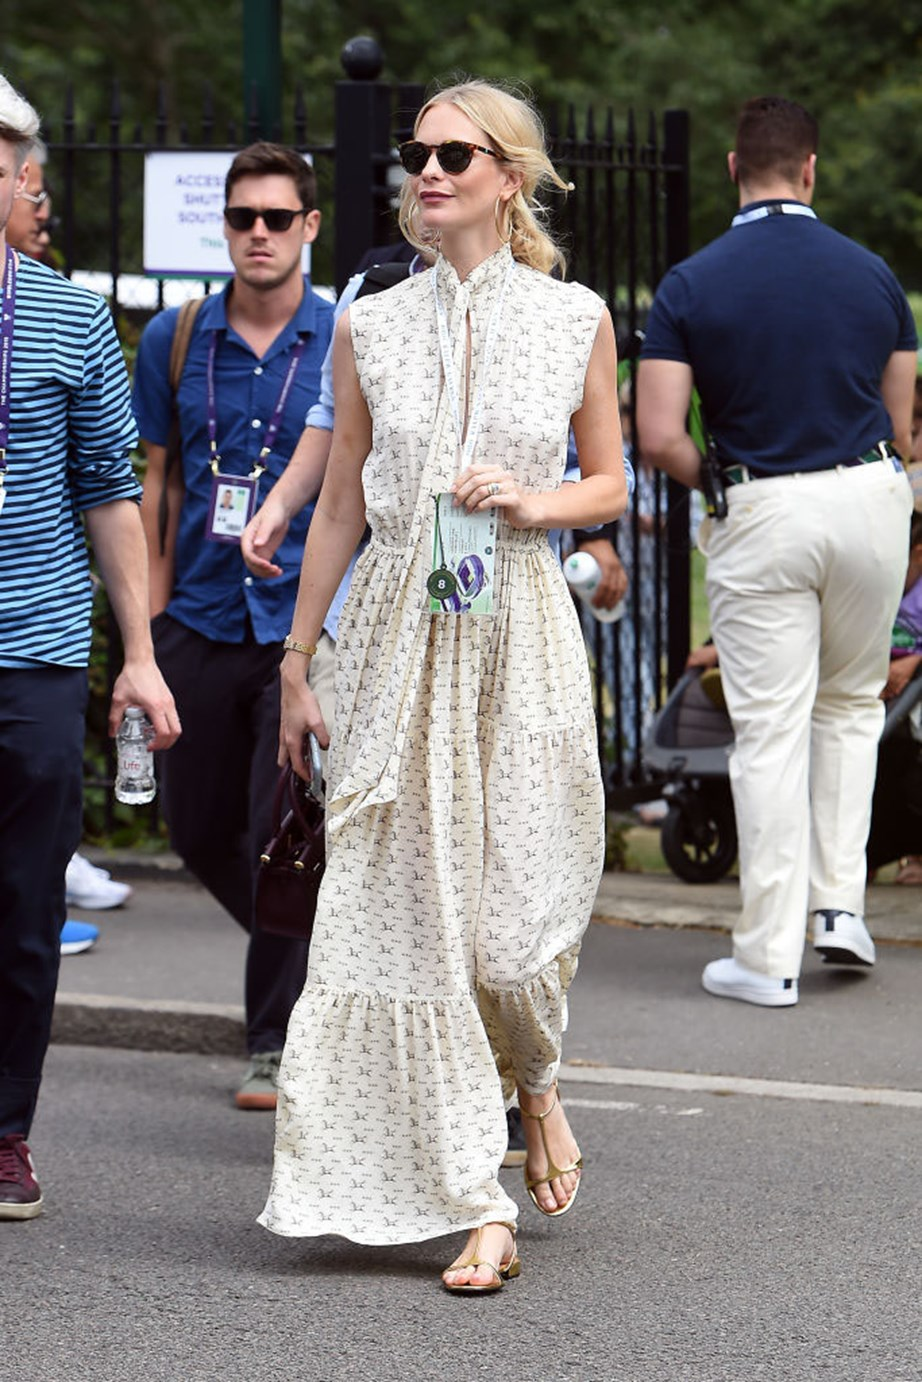 """***Poppy Delevingne***<br><br> """"Poppy Delevingne's breezy floral frock is giving me serious warm-weather envy (and making me feel quite drab about my current rotation of head-to-toe black winter dressing)."""" Janna Johnson O'Toole, beauty and wellness director."""